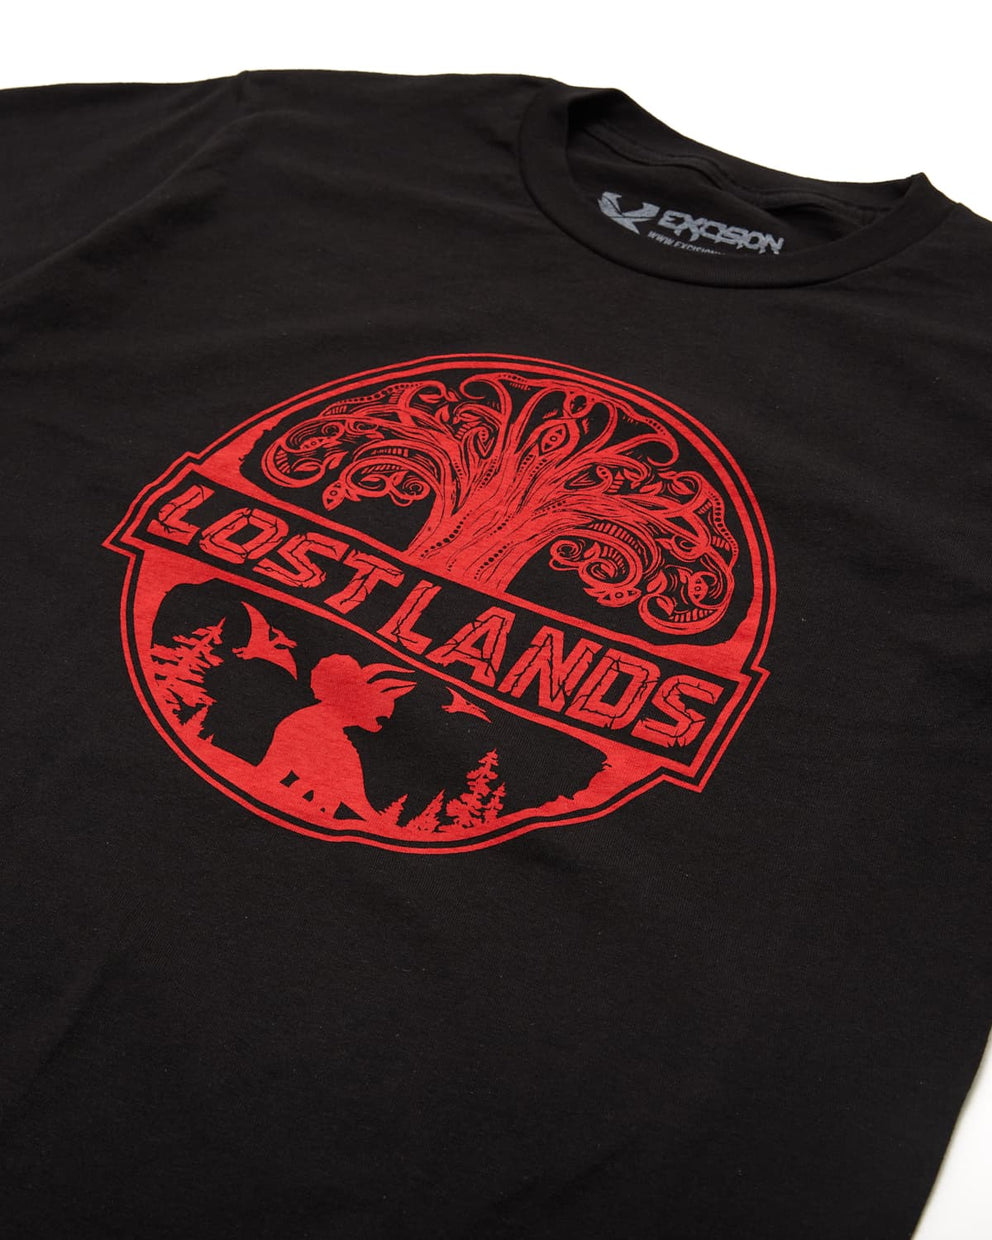 Official Lost Lands 2019 Lineup T-Shirt - Black/Red